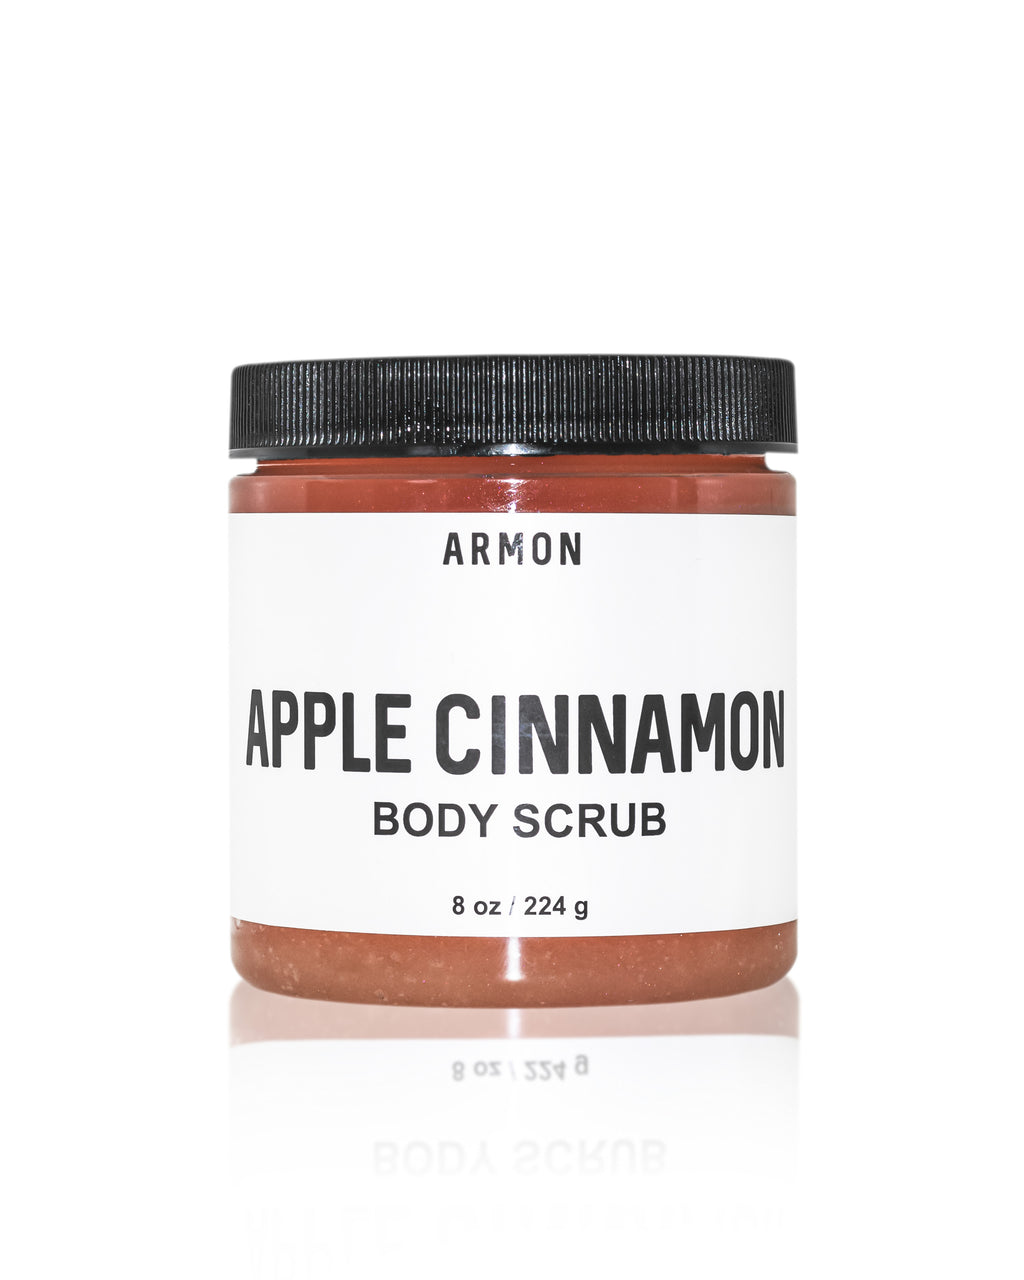 APPLE CINNAMON BODY SCRUB